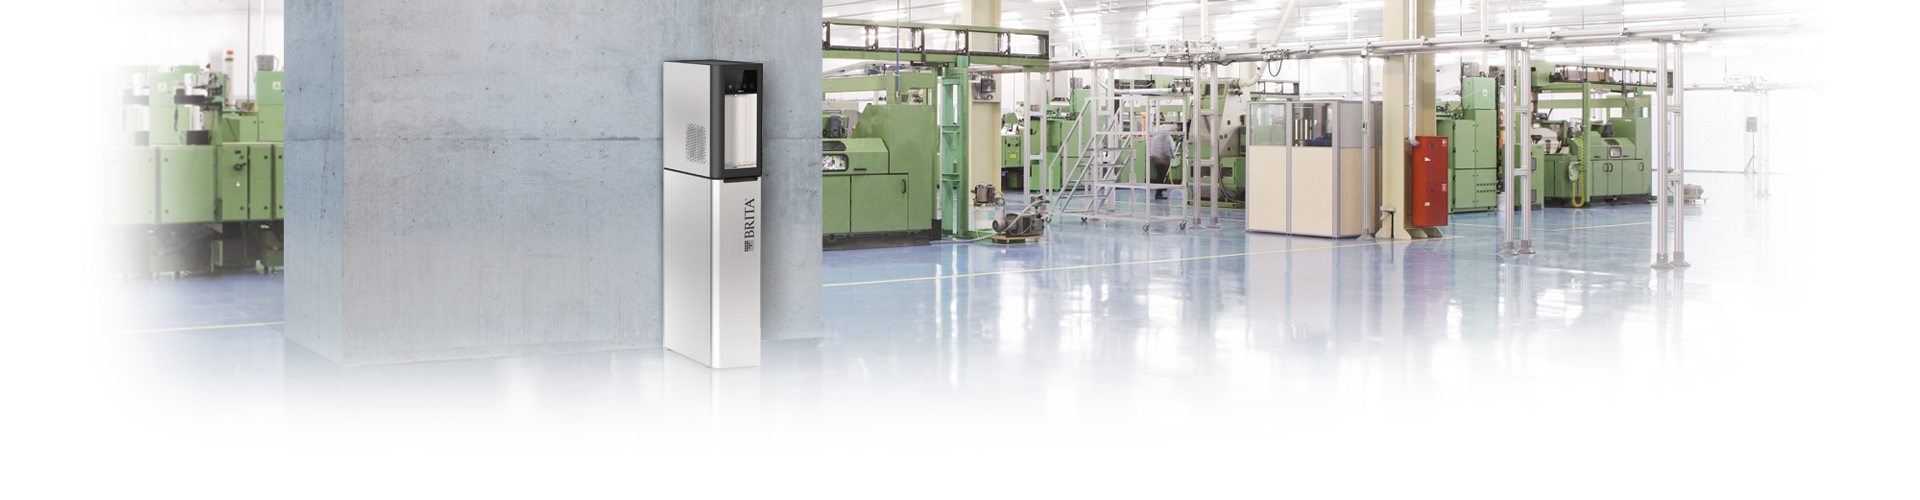 Water dispensers in the industry